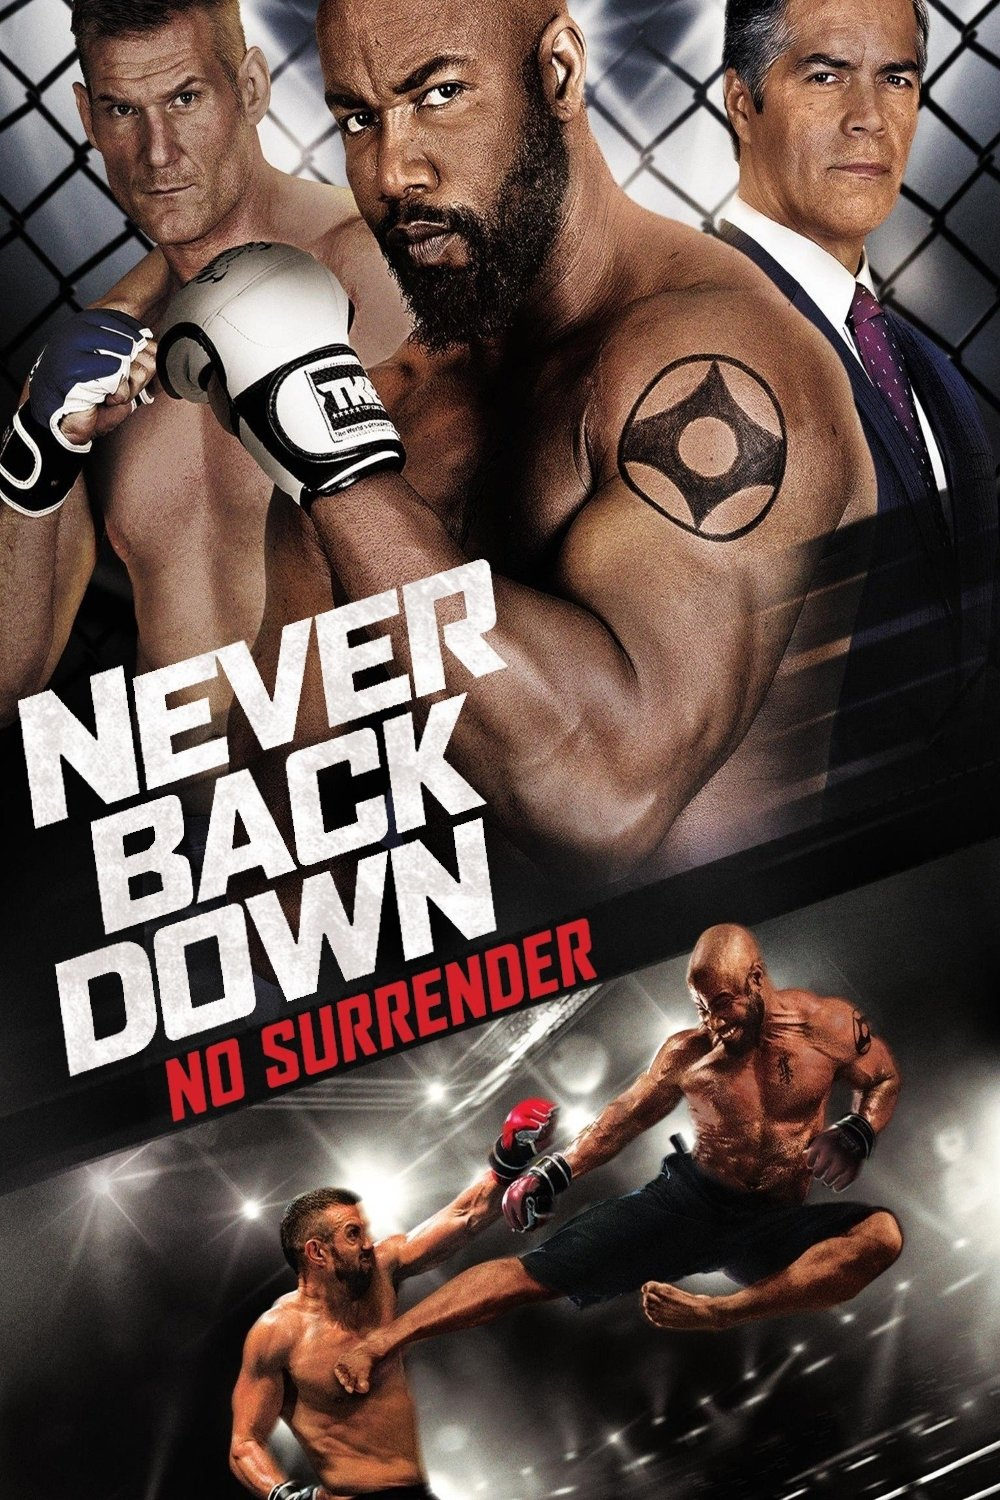 Never Back Down No Surrender